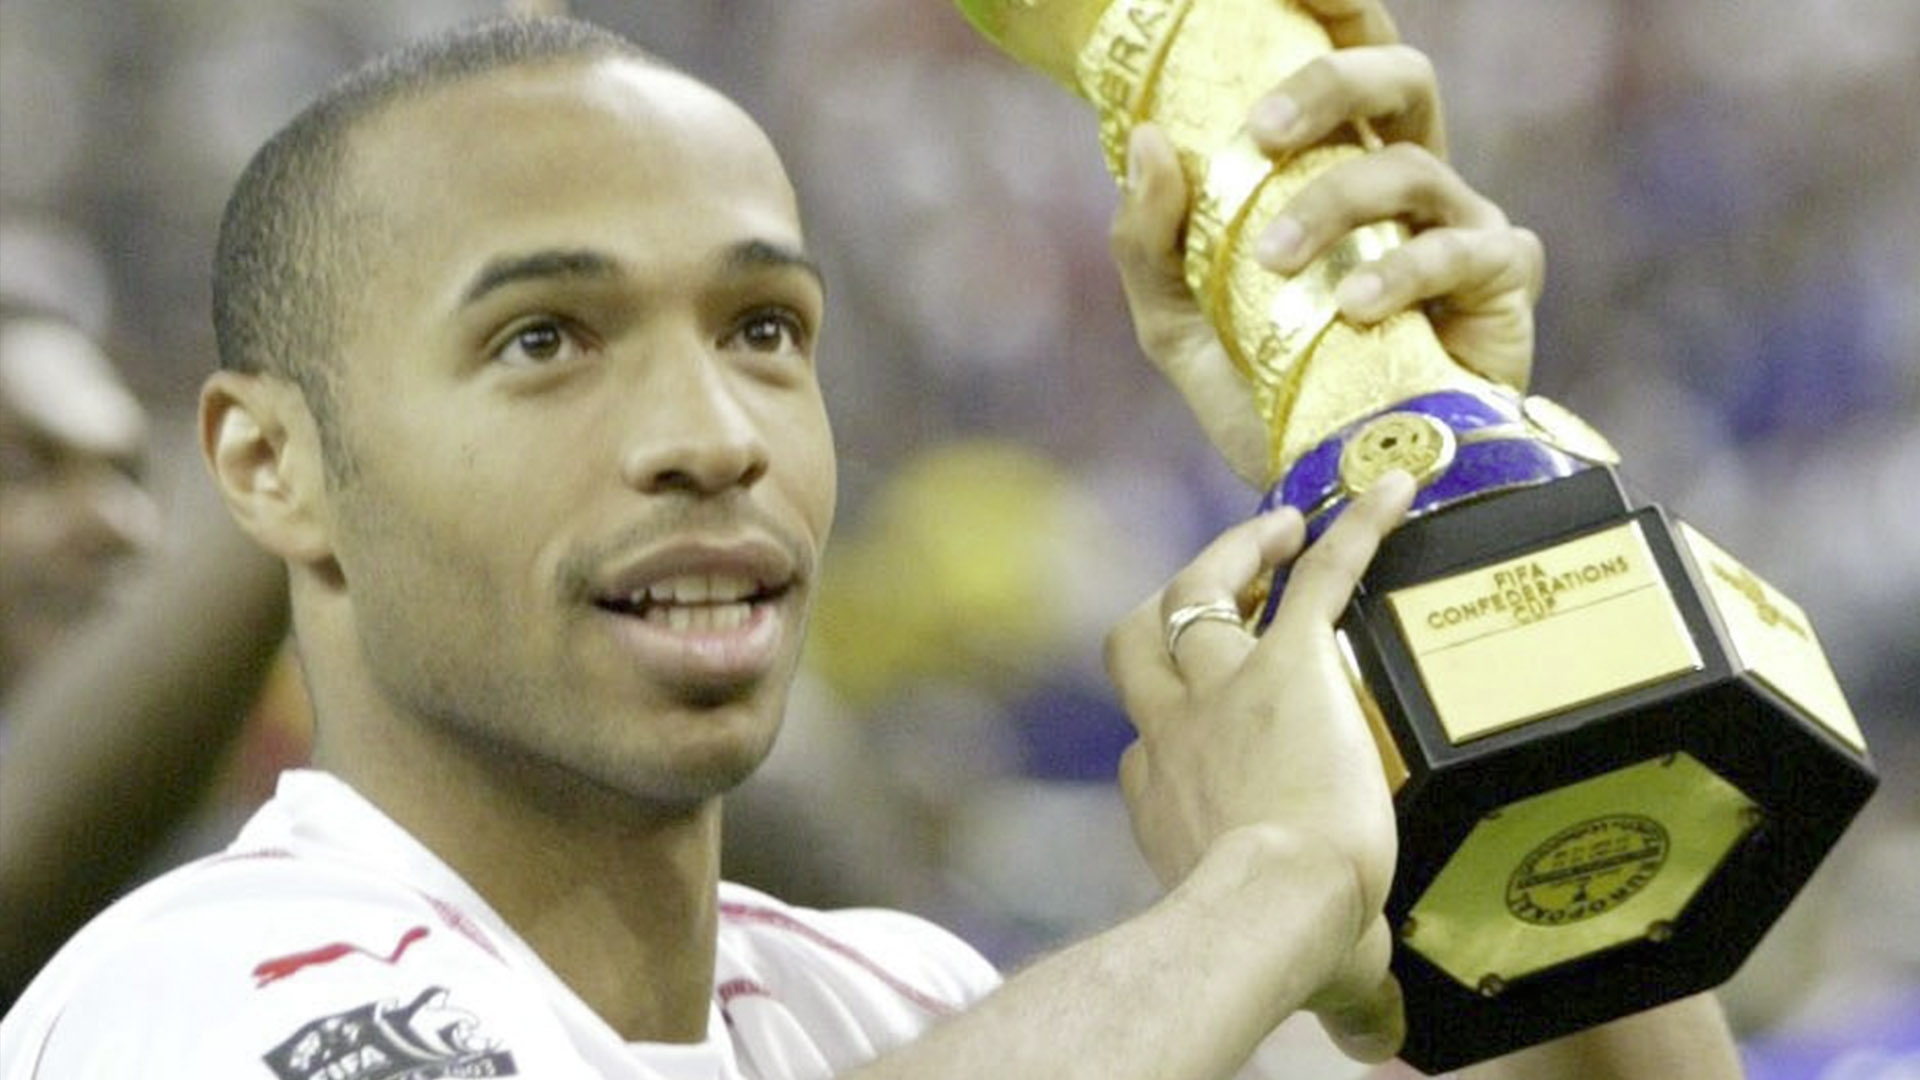 Thierry Henry Confederations Cup France 2003